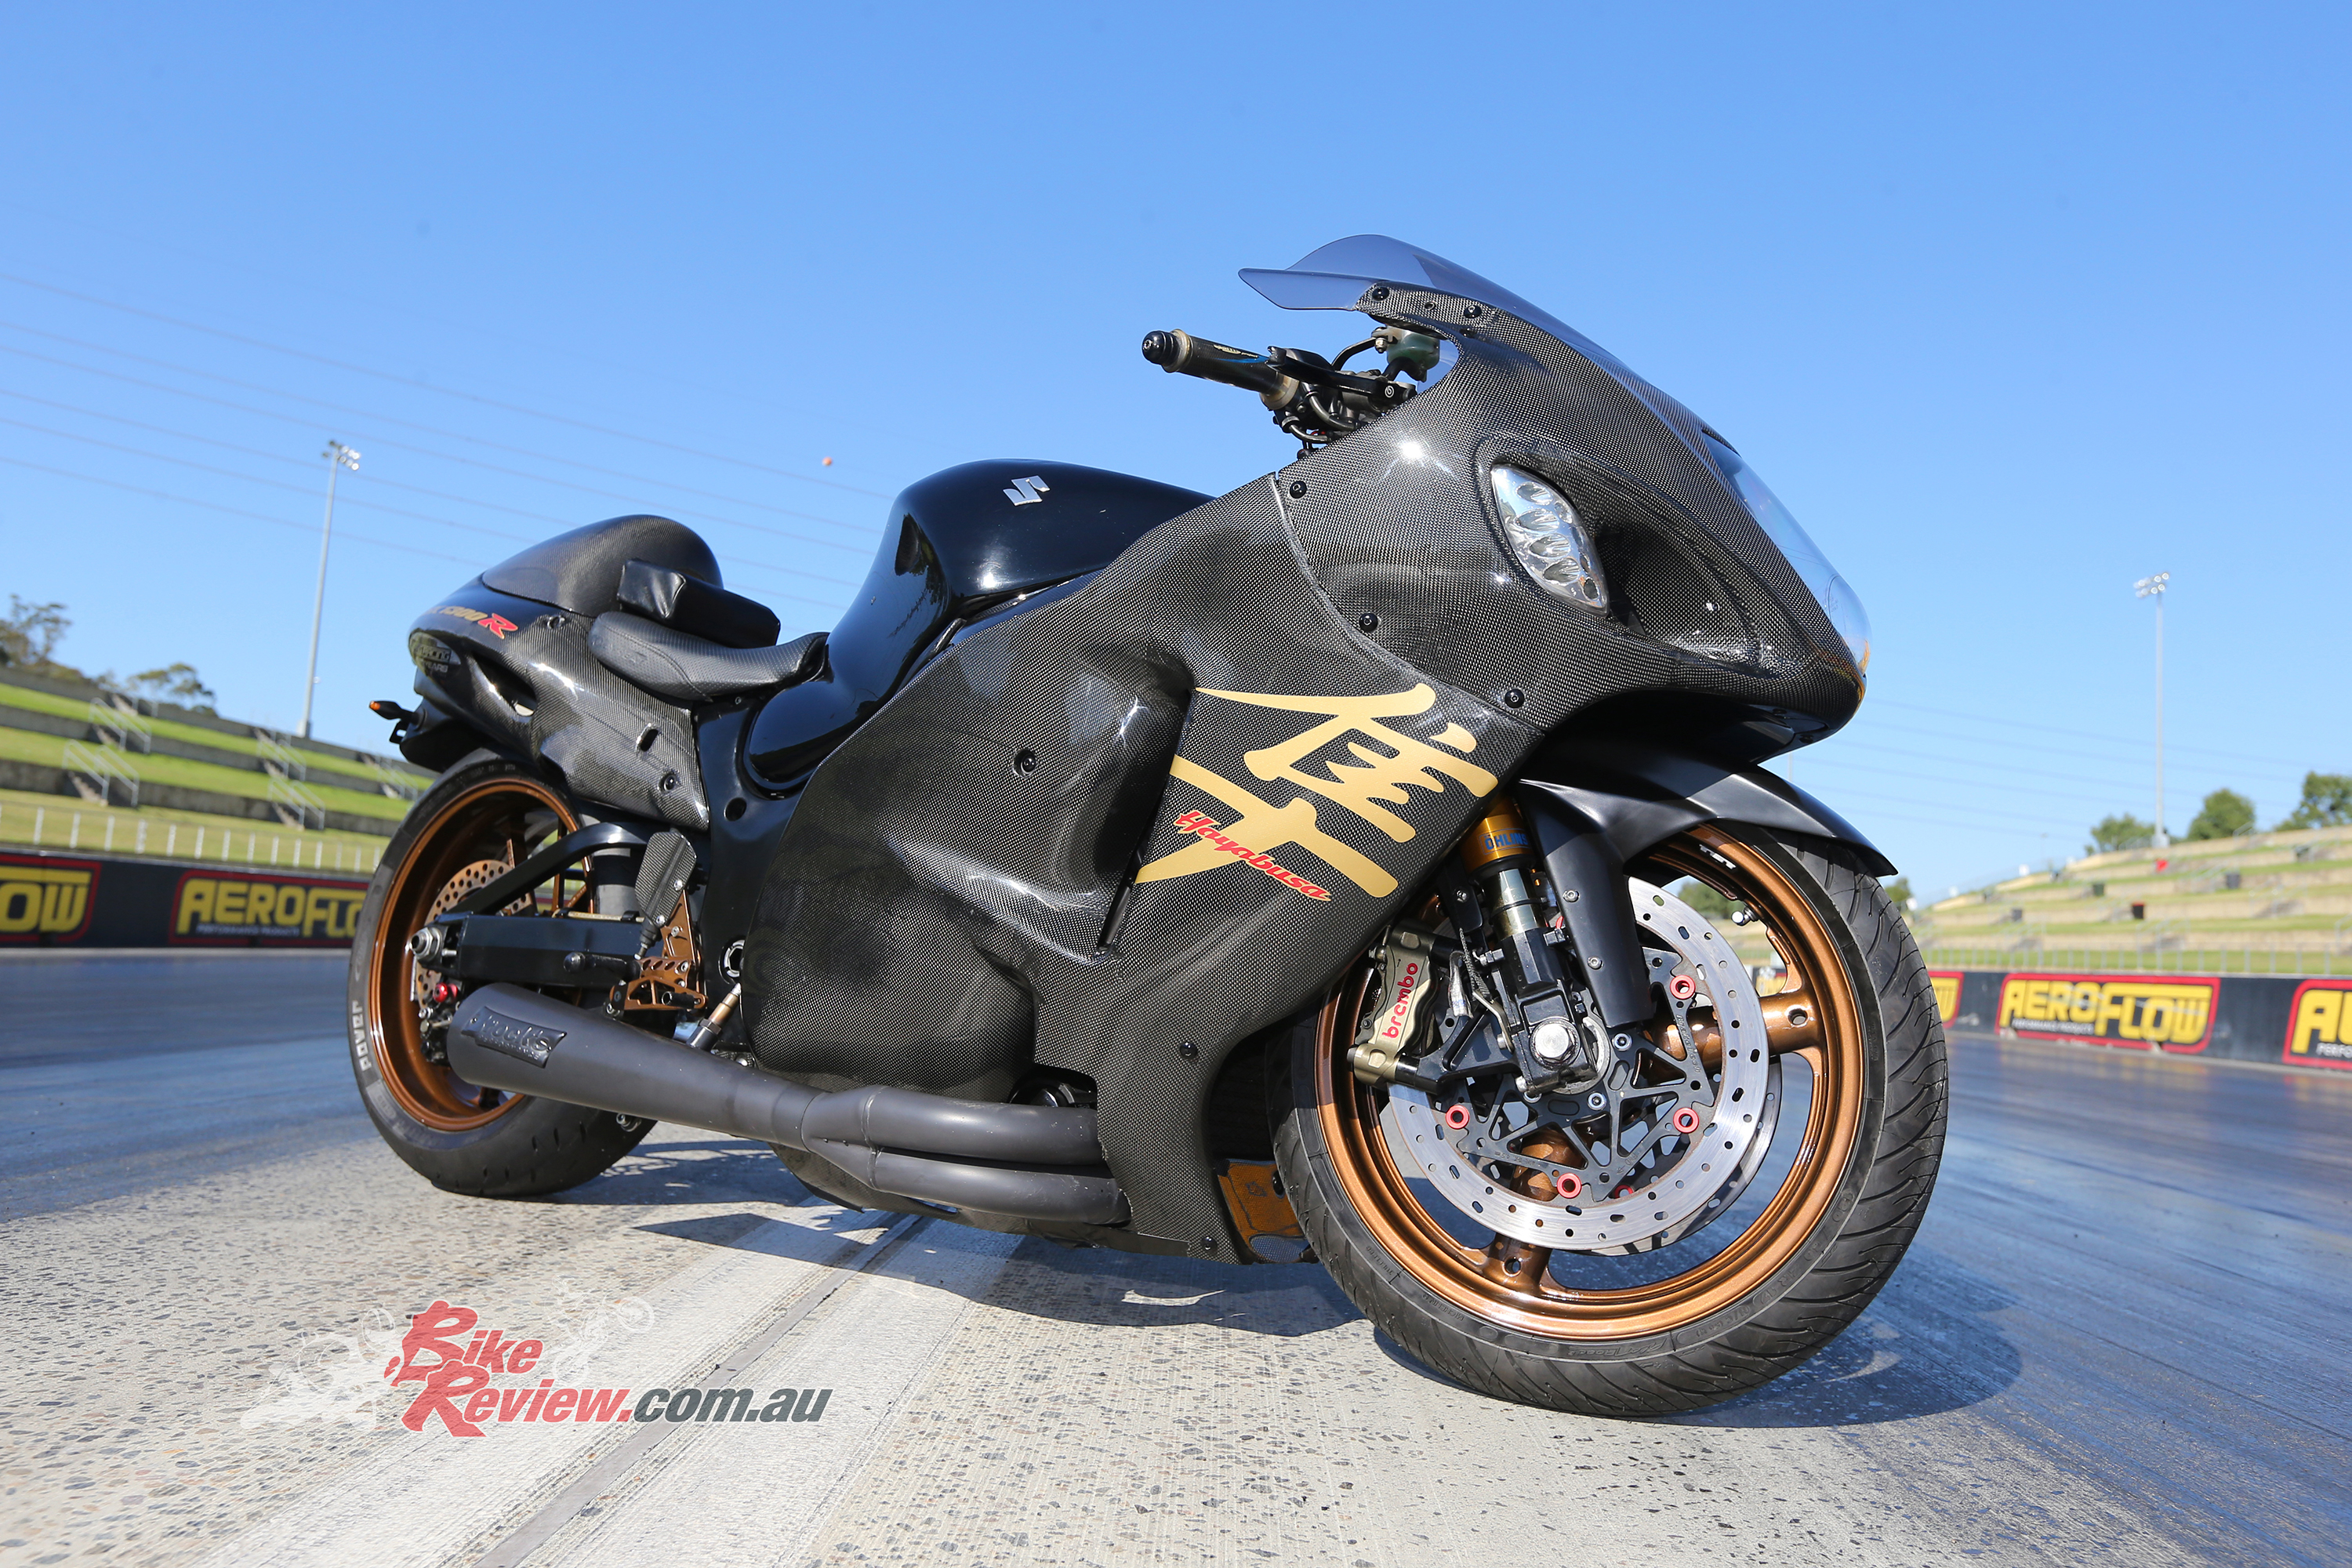 custom racer: hayabusa drag bike - bike review